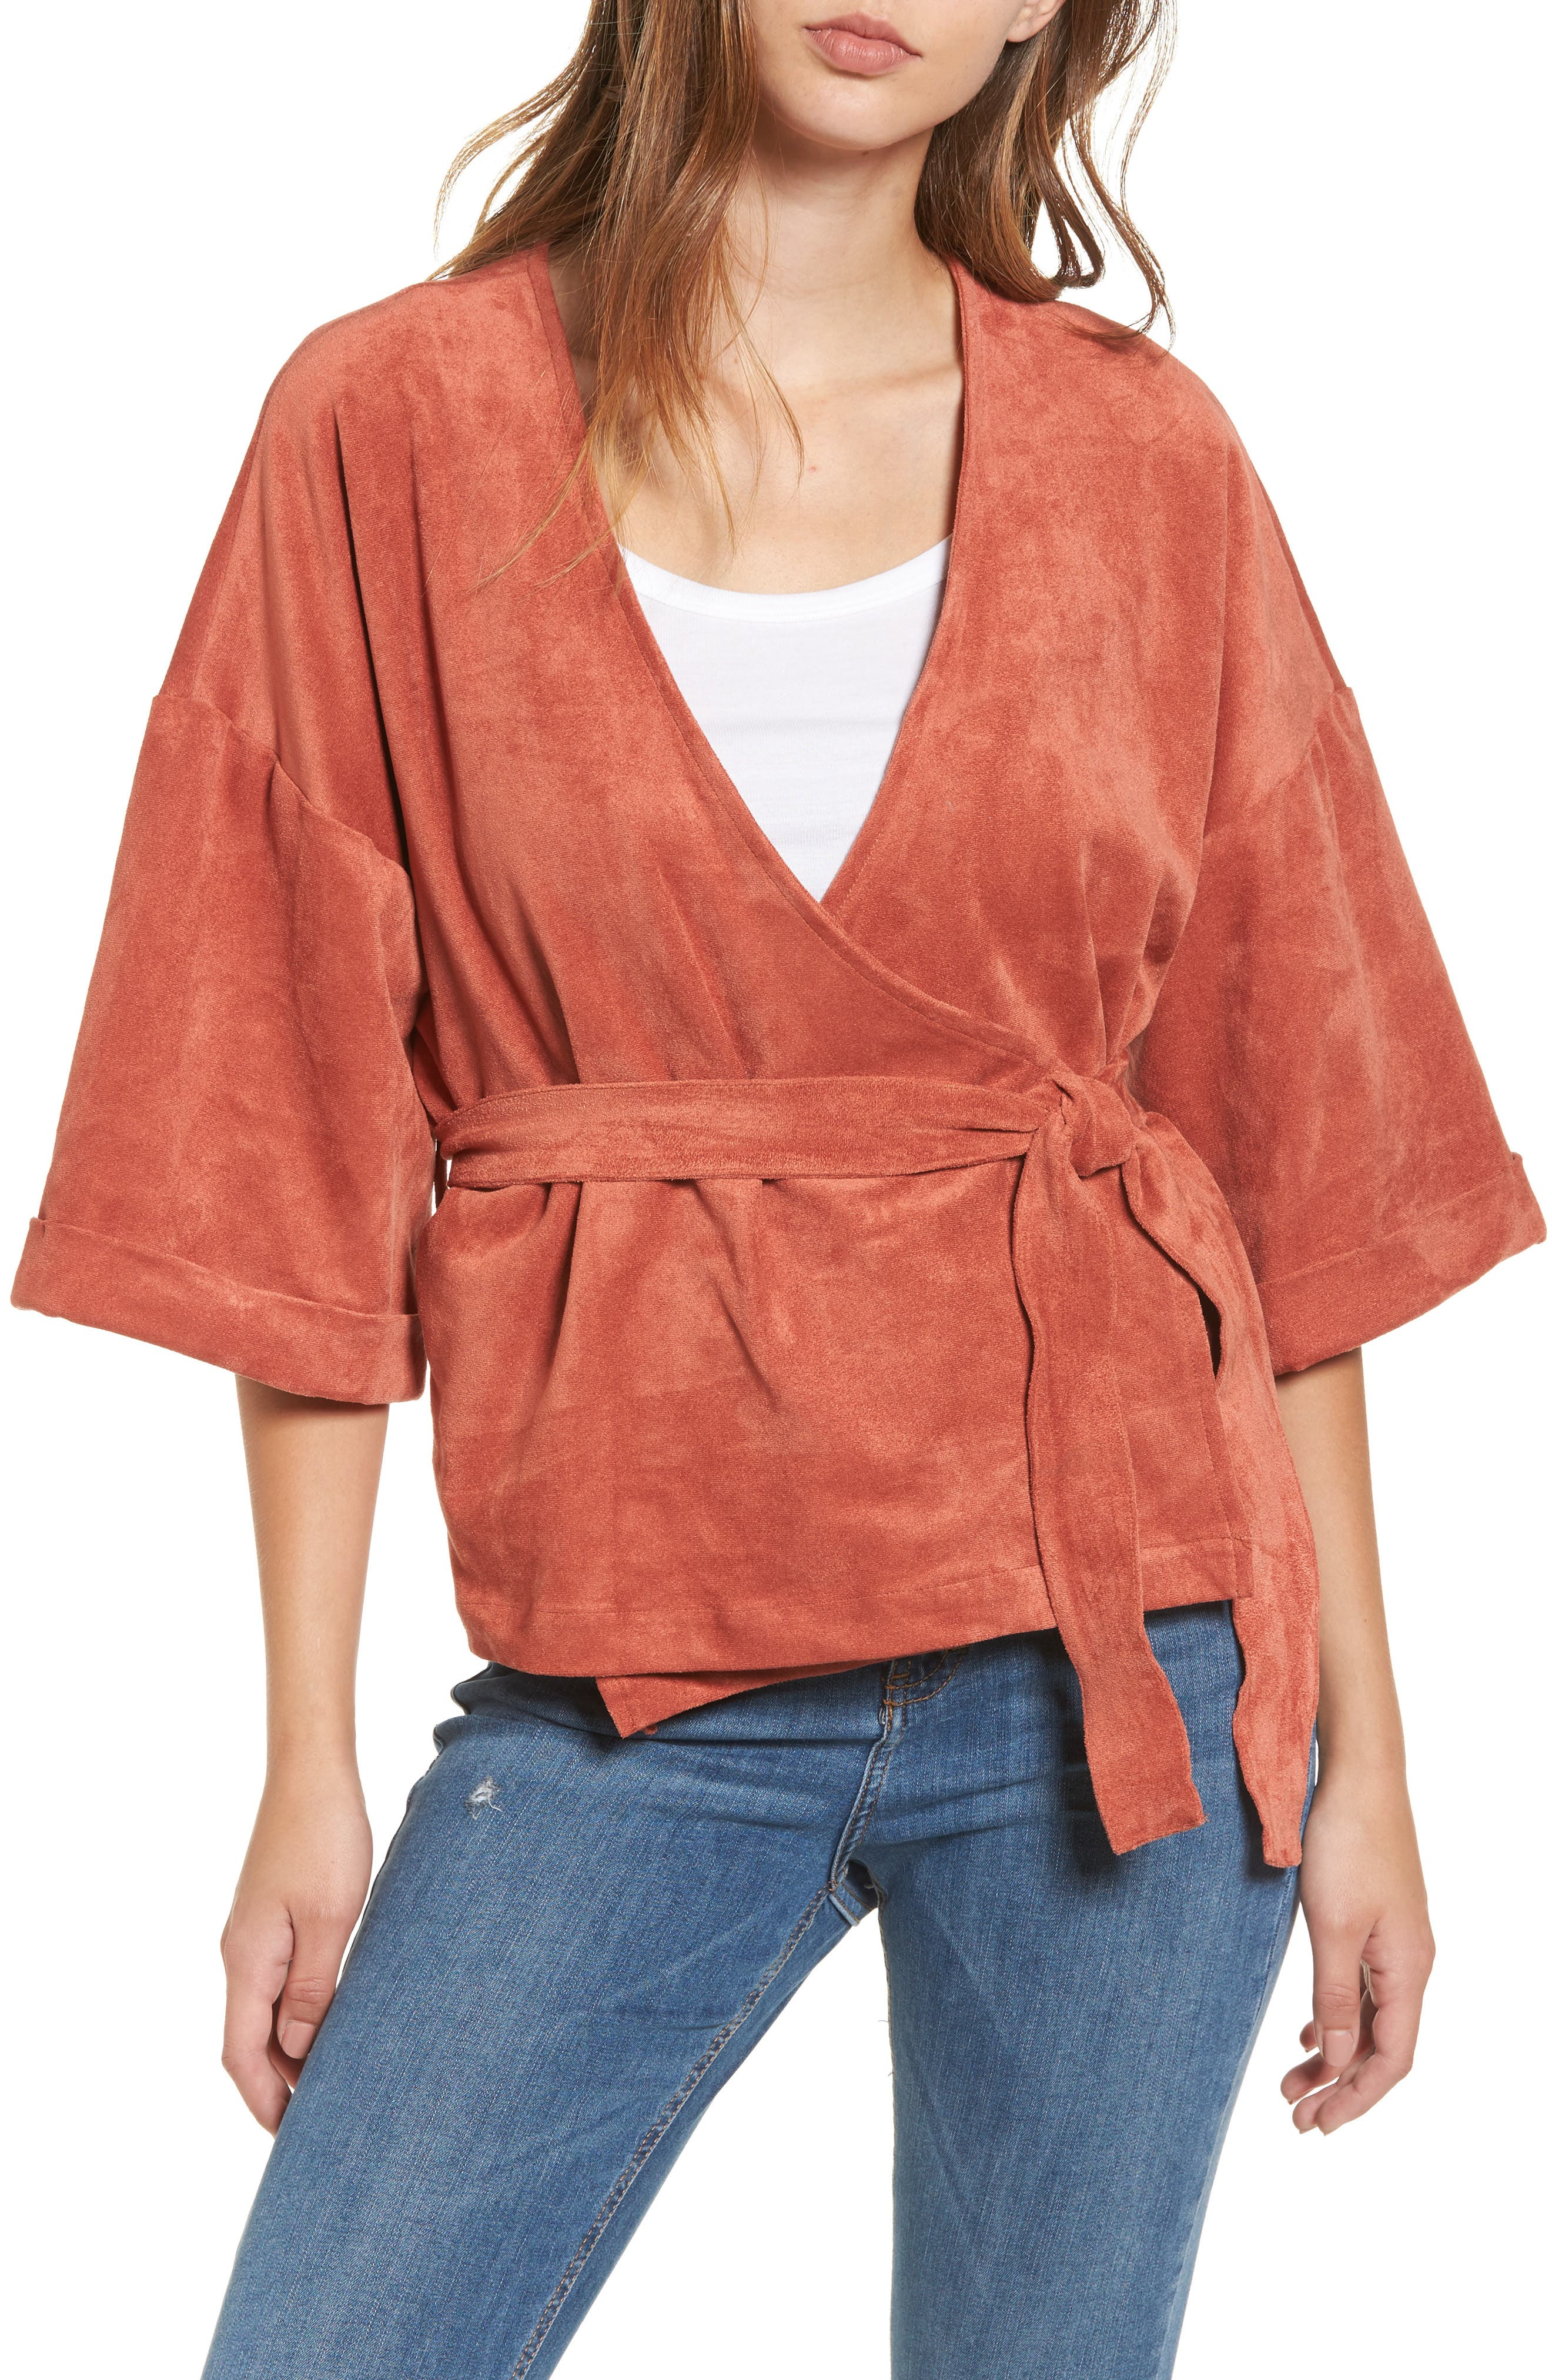 Main Image - Tularosa Rory Faux Suede Wrap Top